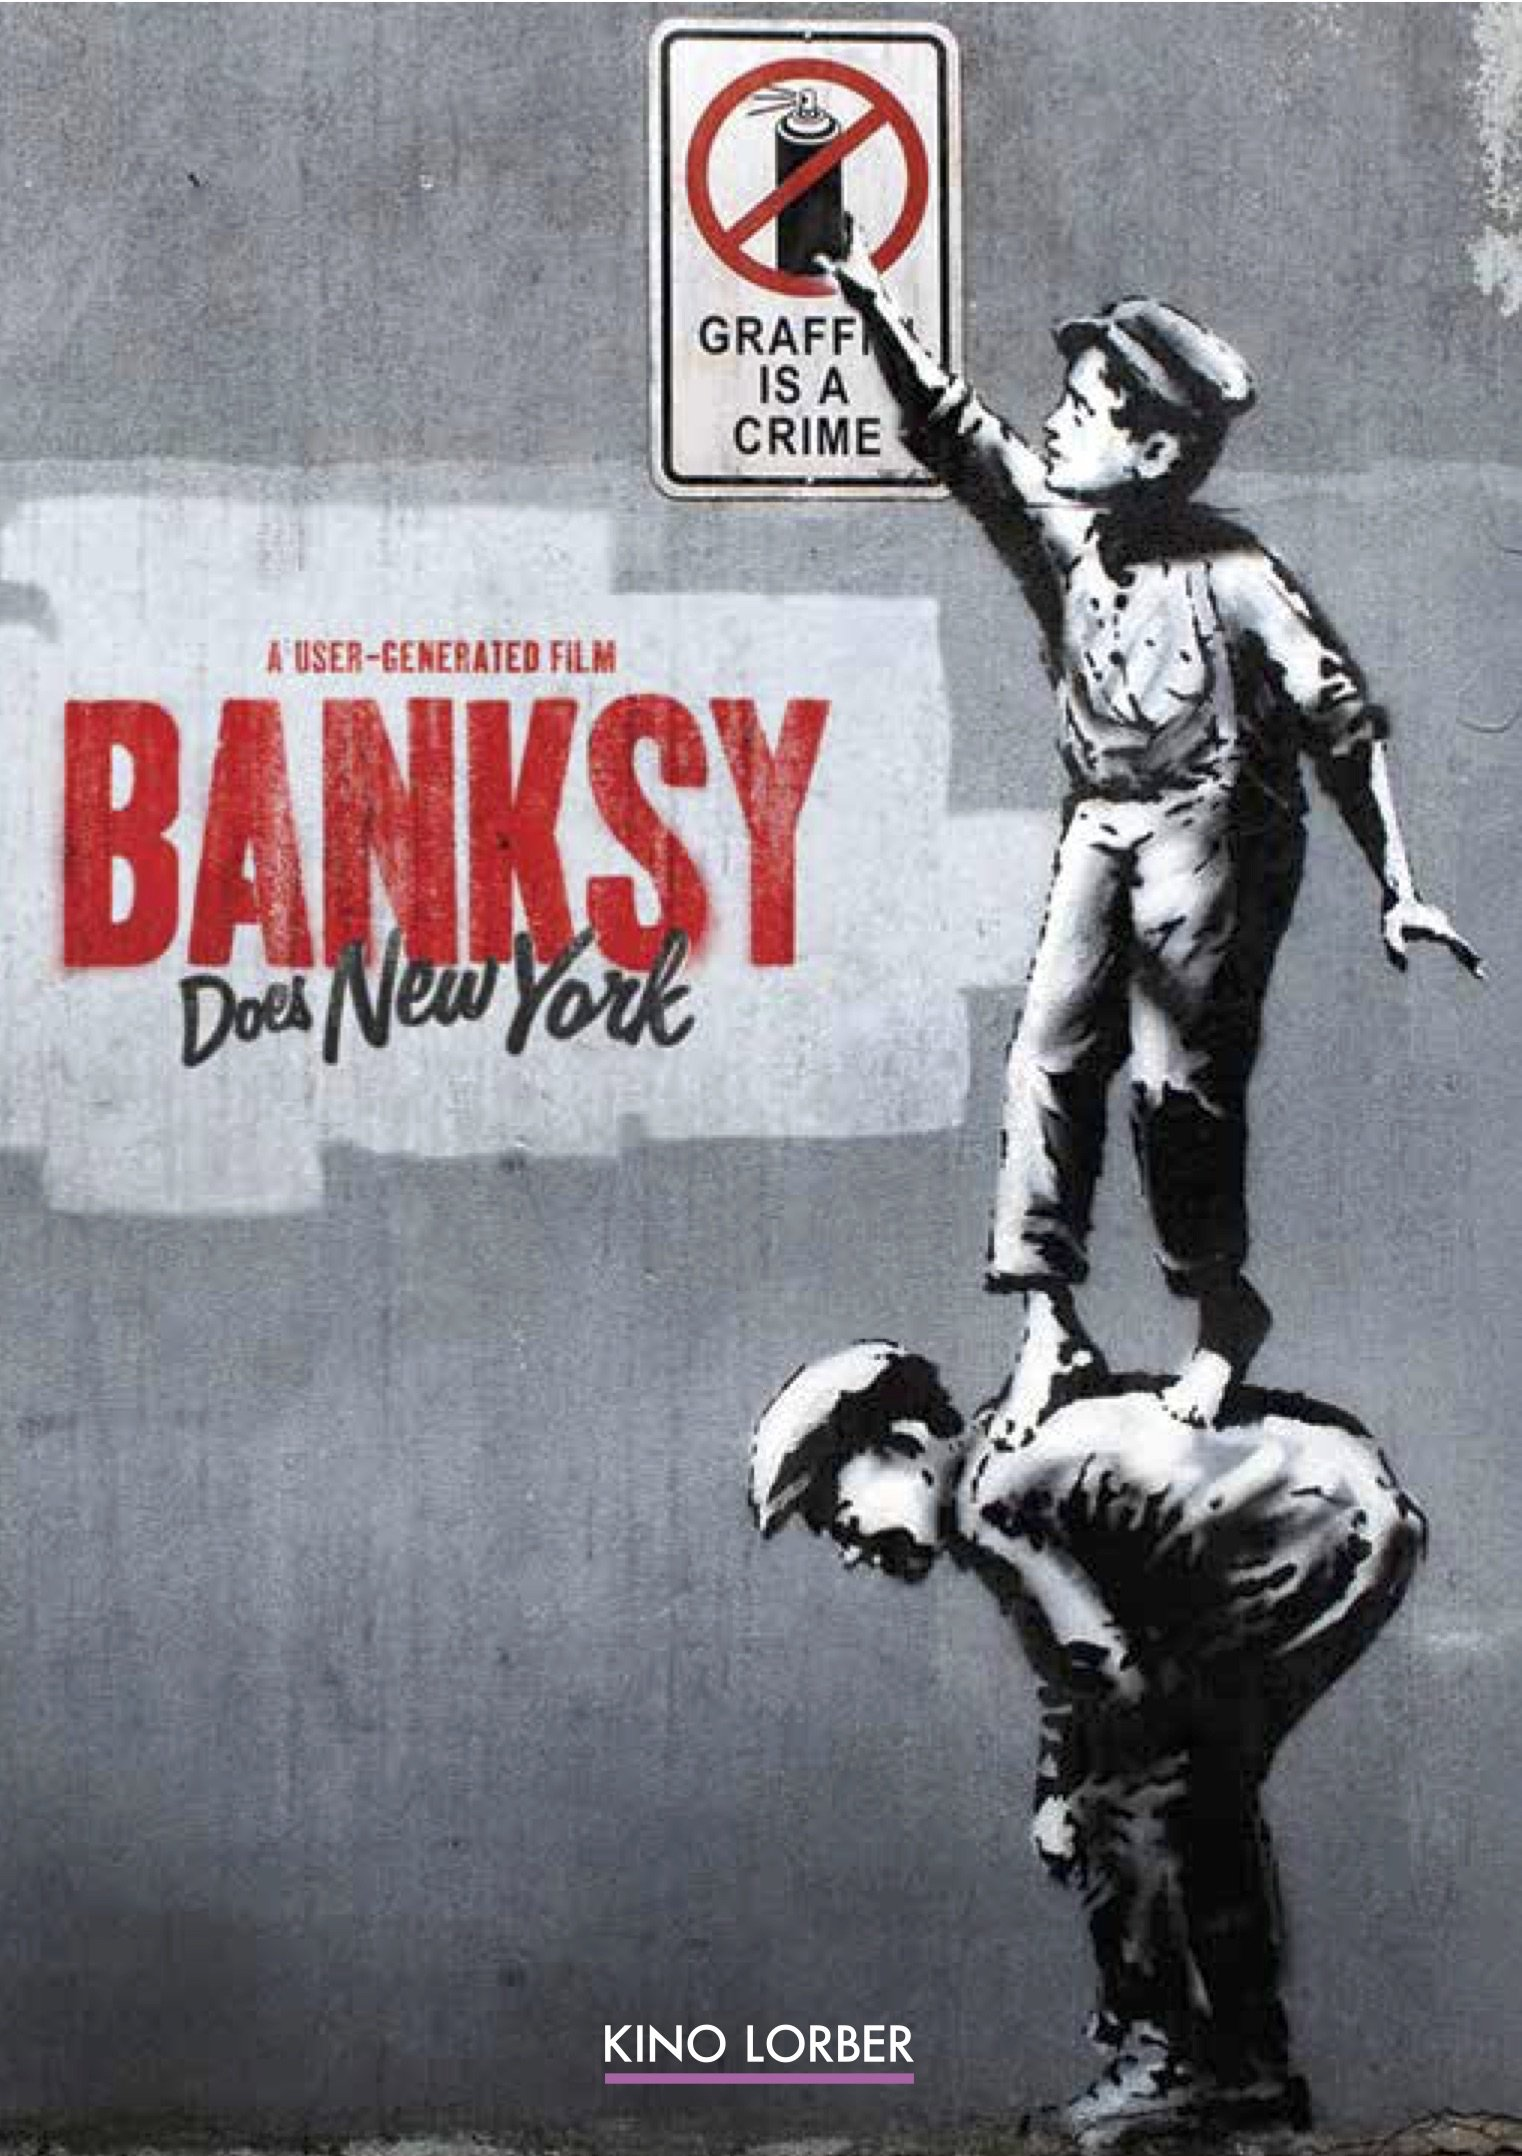 DVD : Banksy - Banksy Does New York (DVD)